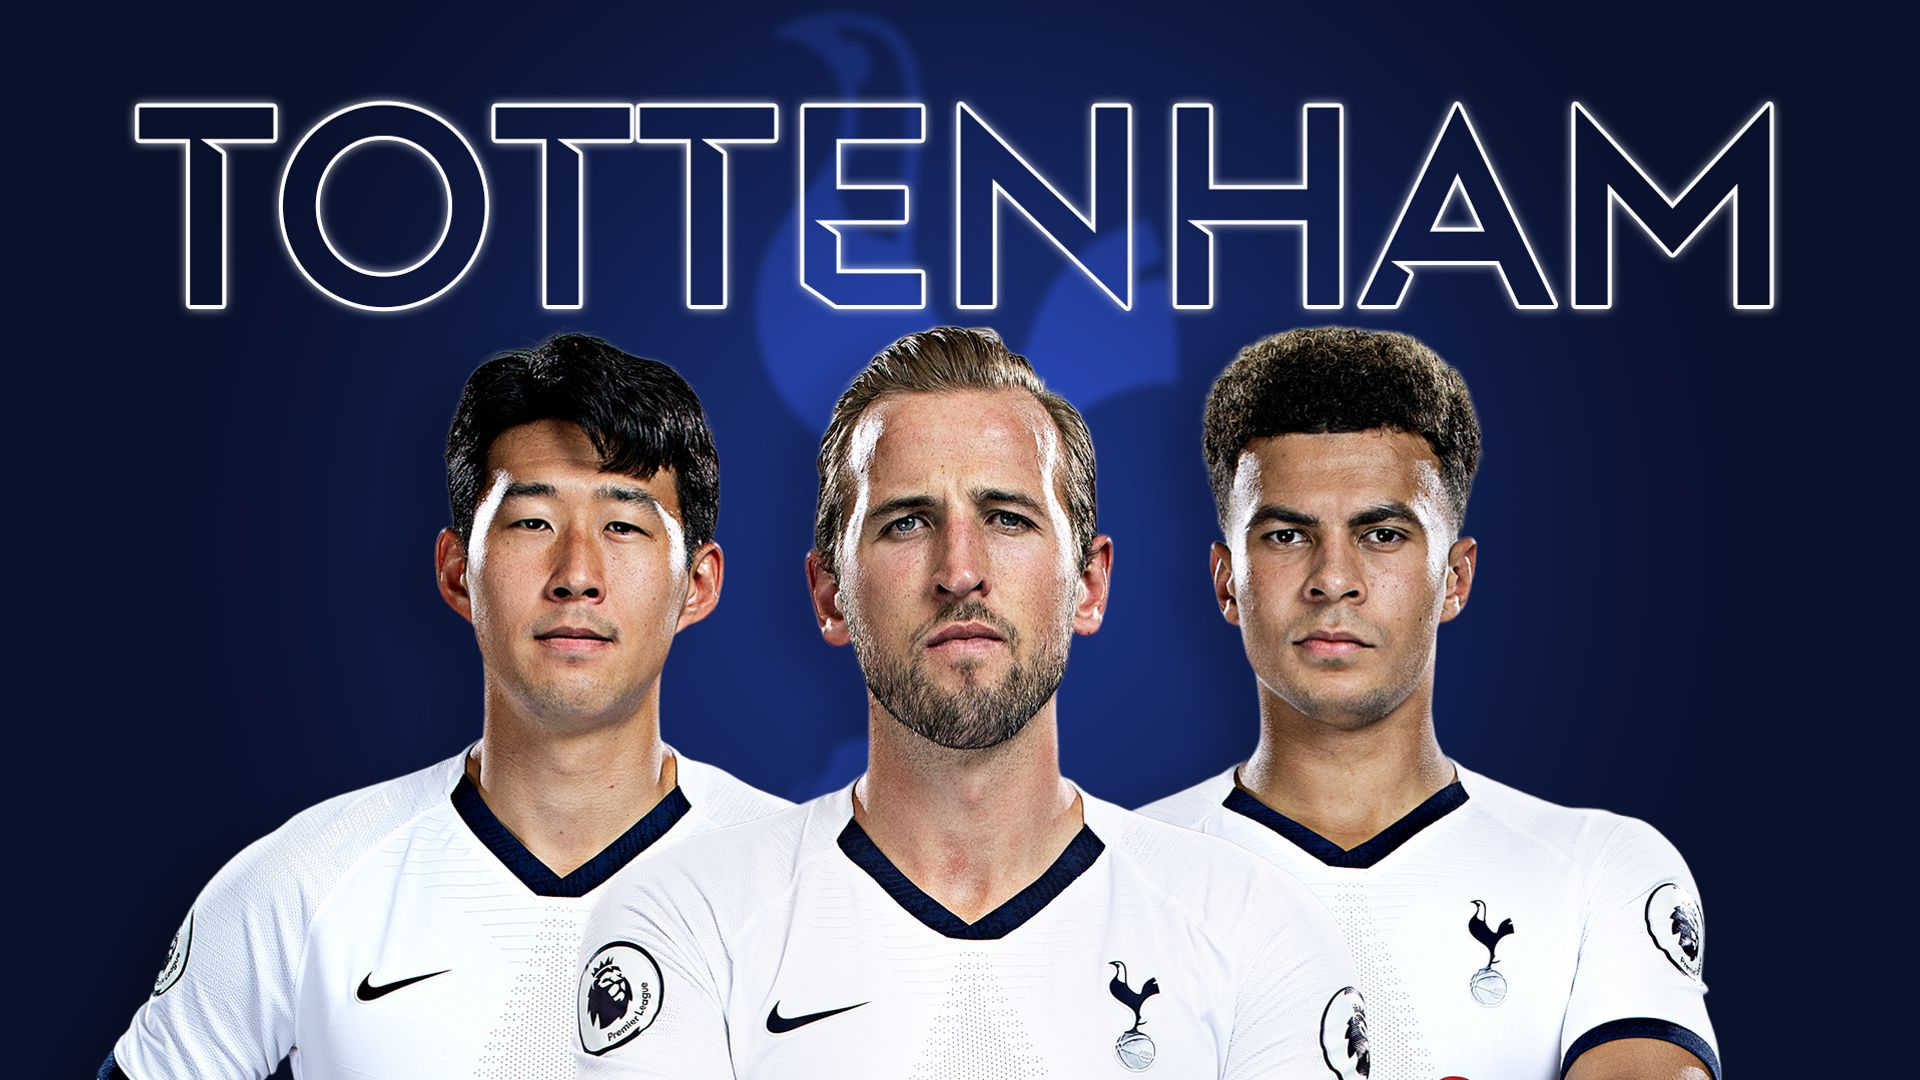 Tottenham 2020/21: A big year for the Jose project